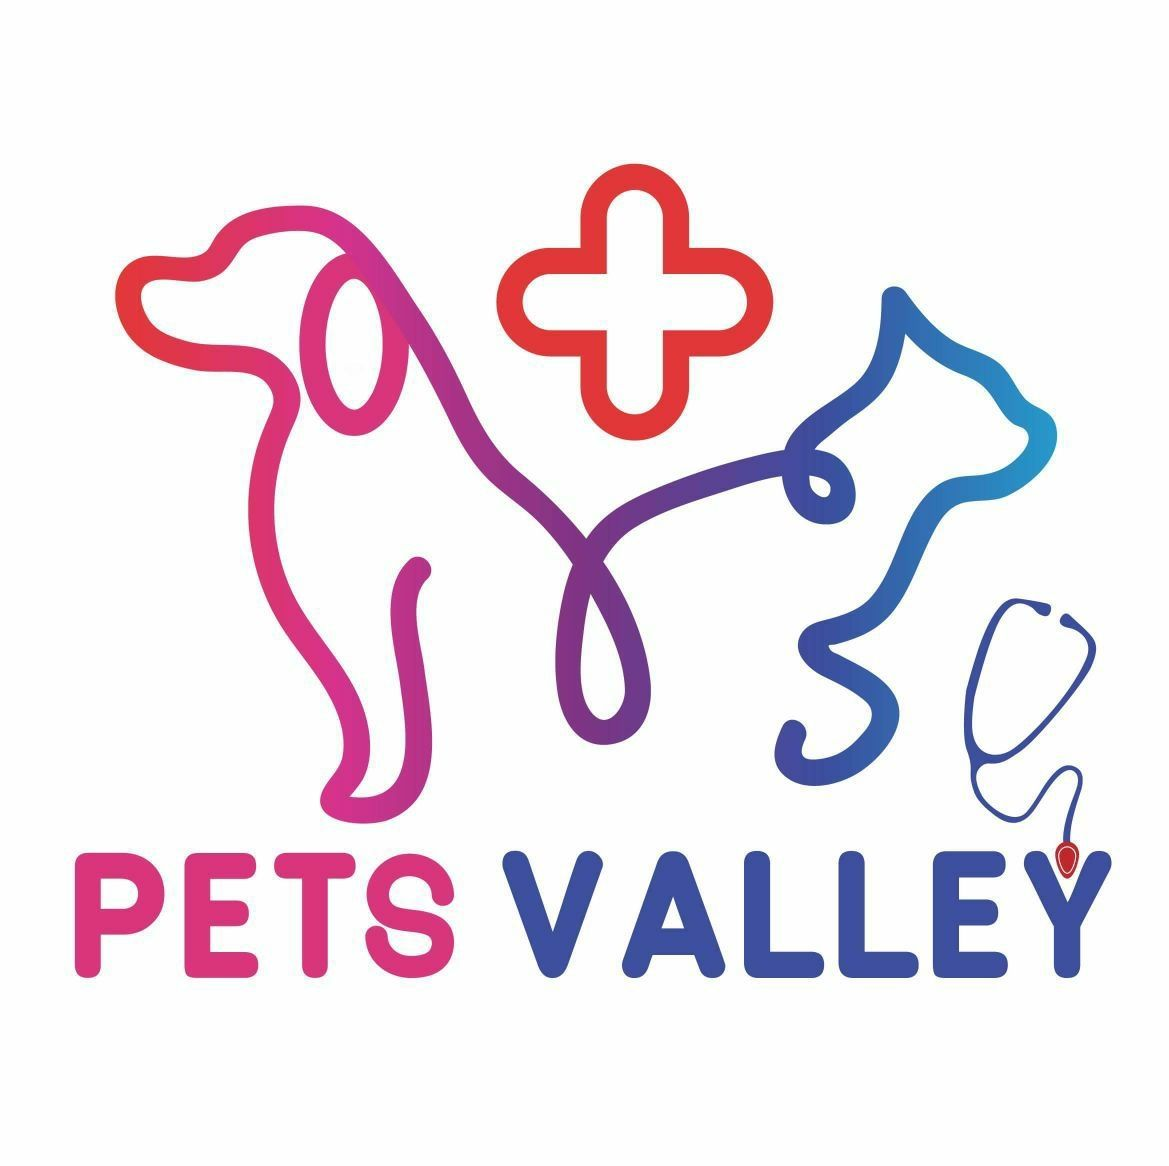 Pets Valley